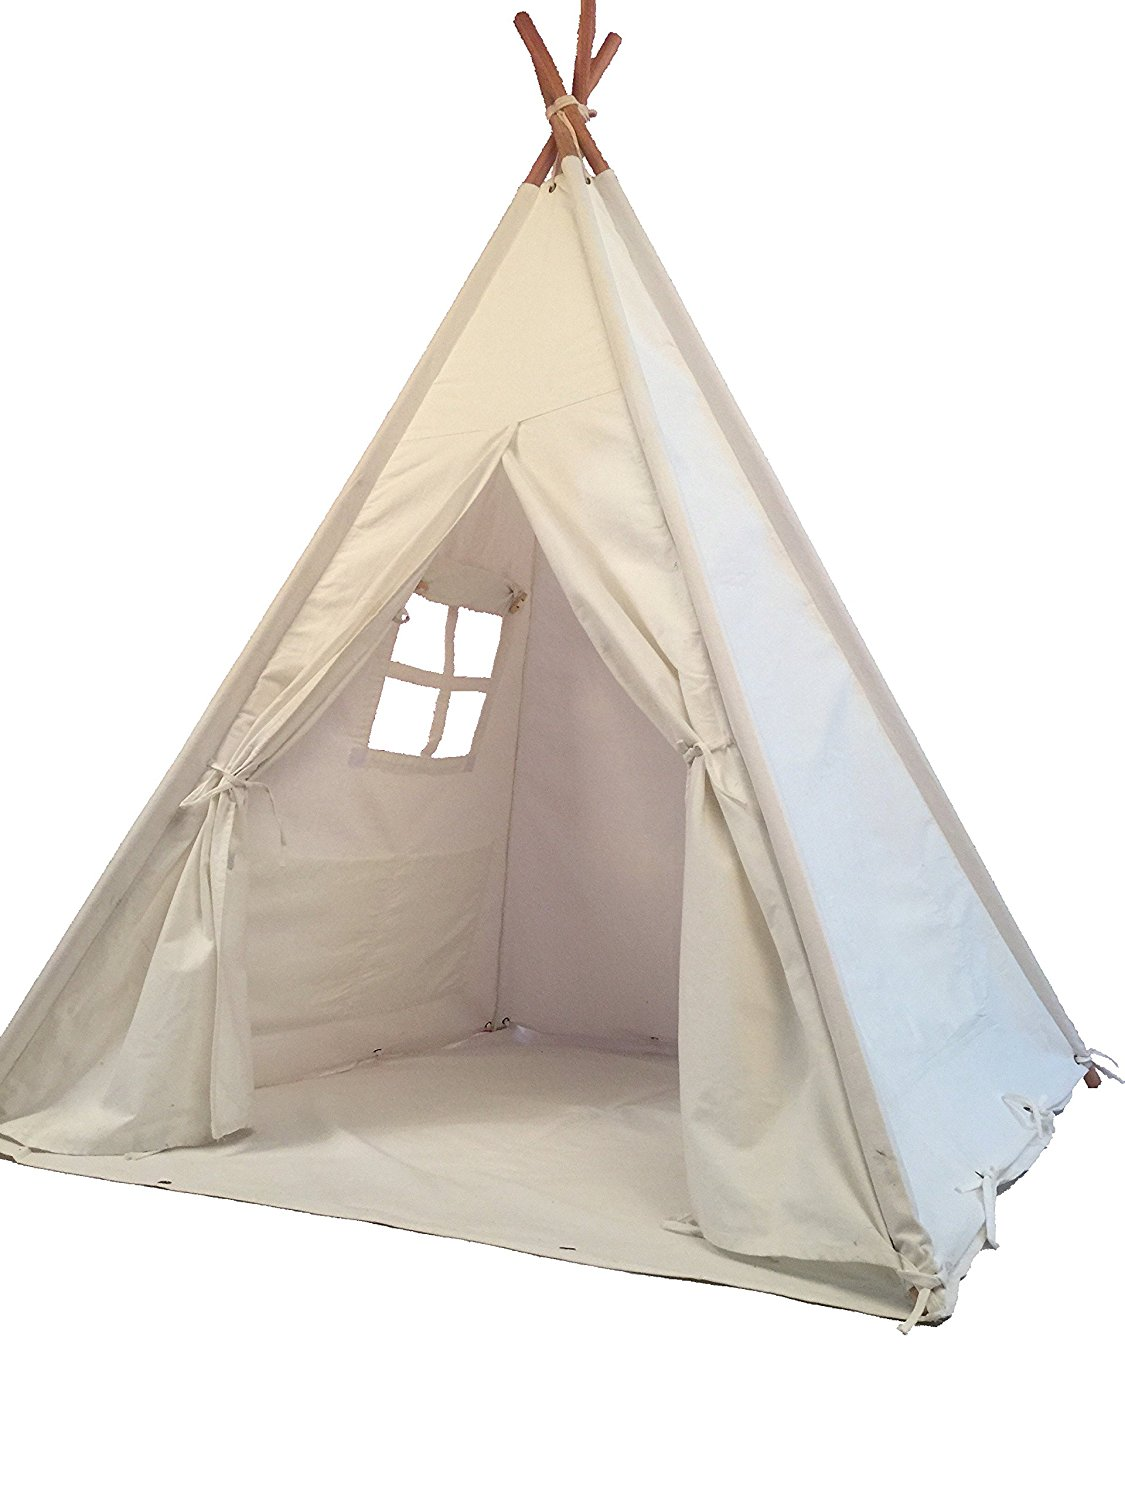 Pericross Kids Teepee Tent Indian Play Tent Childrenu0027s Playhouse for Outdoor and Indoor Play  sc 1 st  Walmart & Pericross Kids Teepee Tent Indian Play Tent Childrenu0027s Playhouse ...